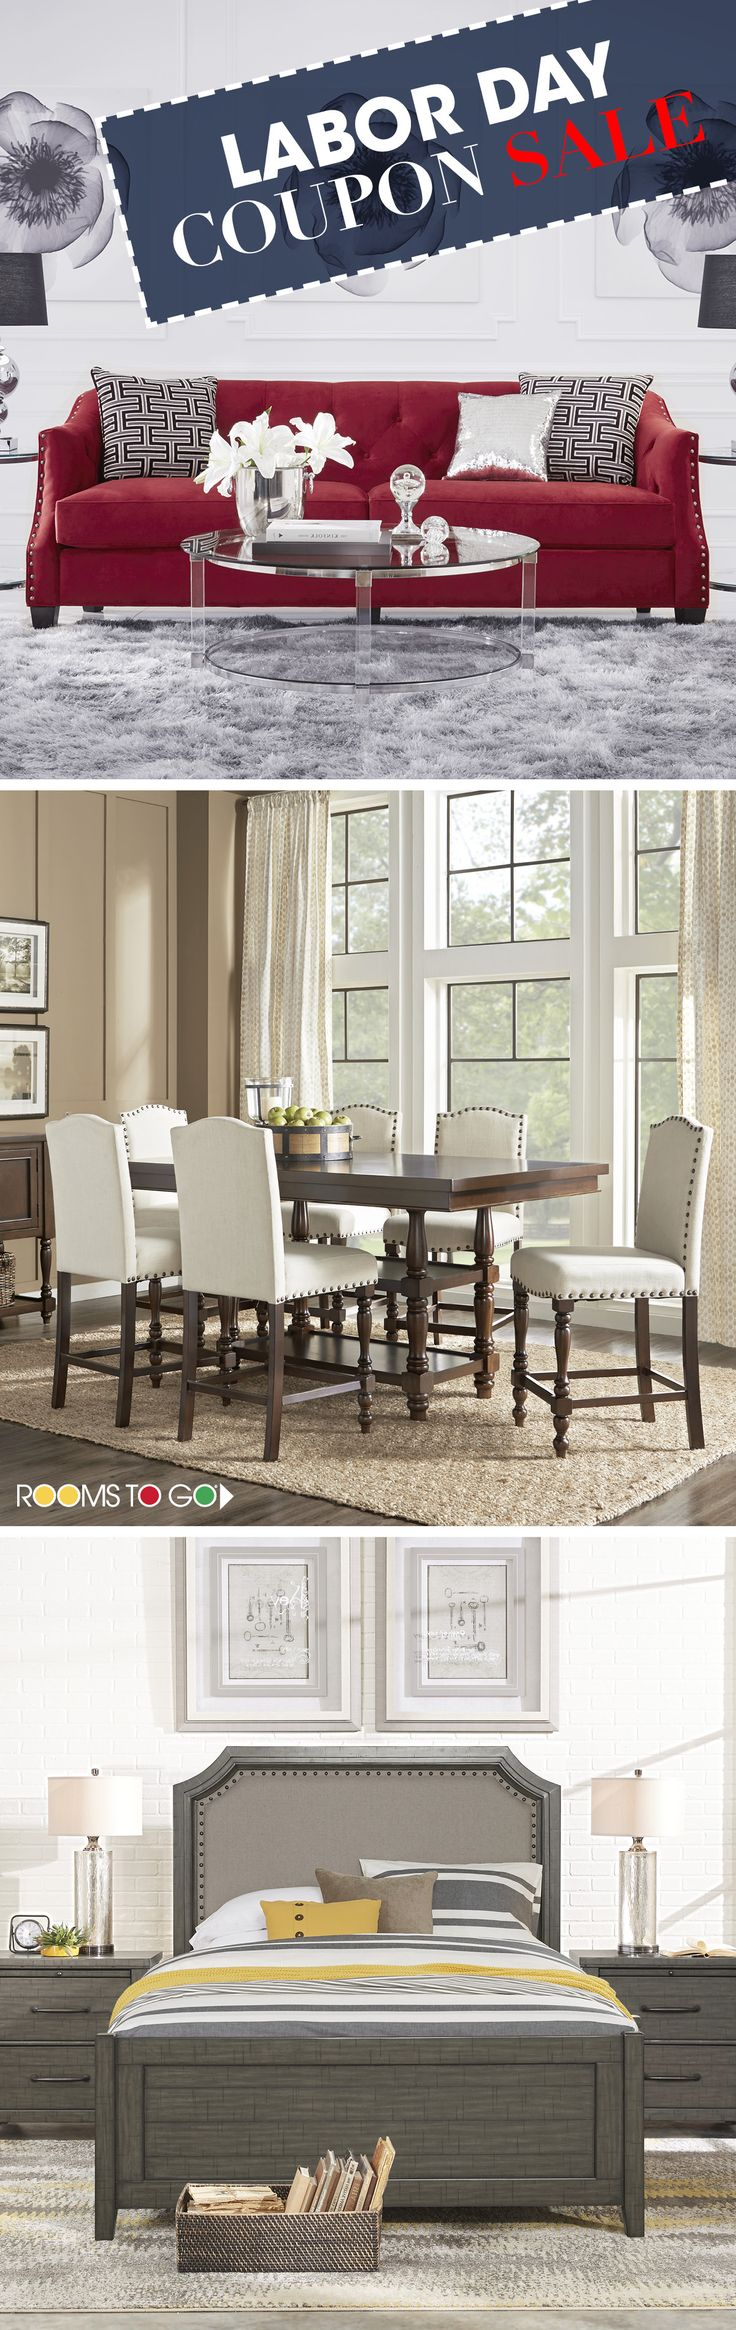 Ready For A Room Redesign Shop Our Labor Day Coupon Sale Now And Save On Furniture The Bedroom Living Dining